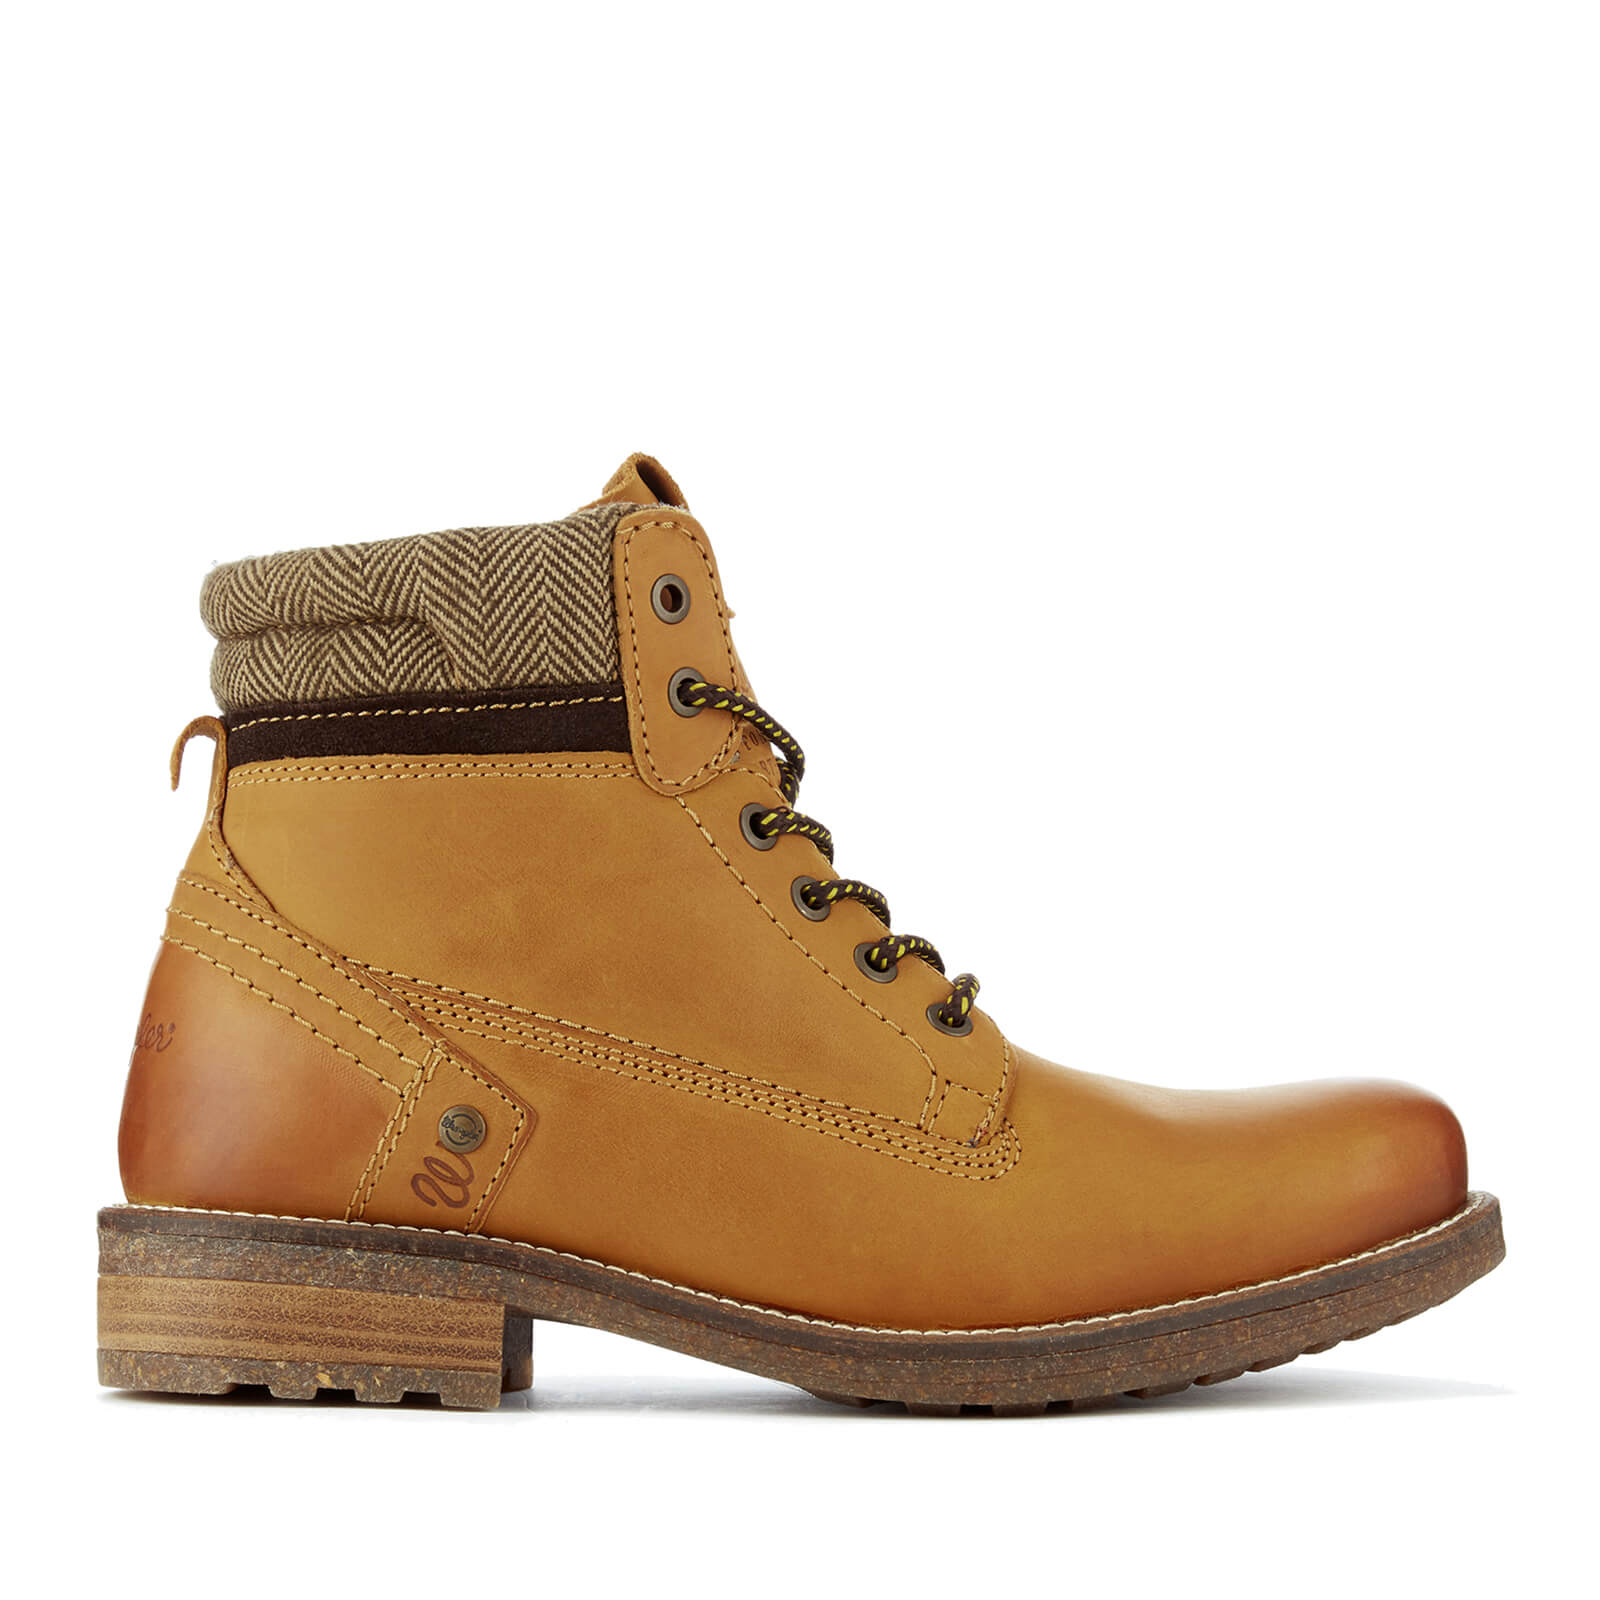 88358bea442 Wrangler Men's Hill Tweed Lace Up Boots - Camel